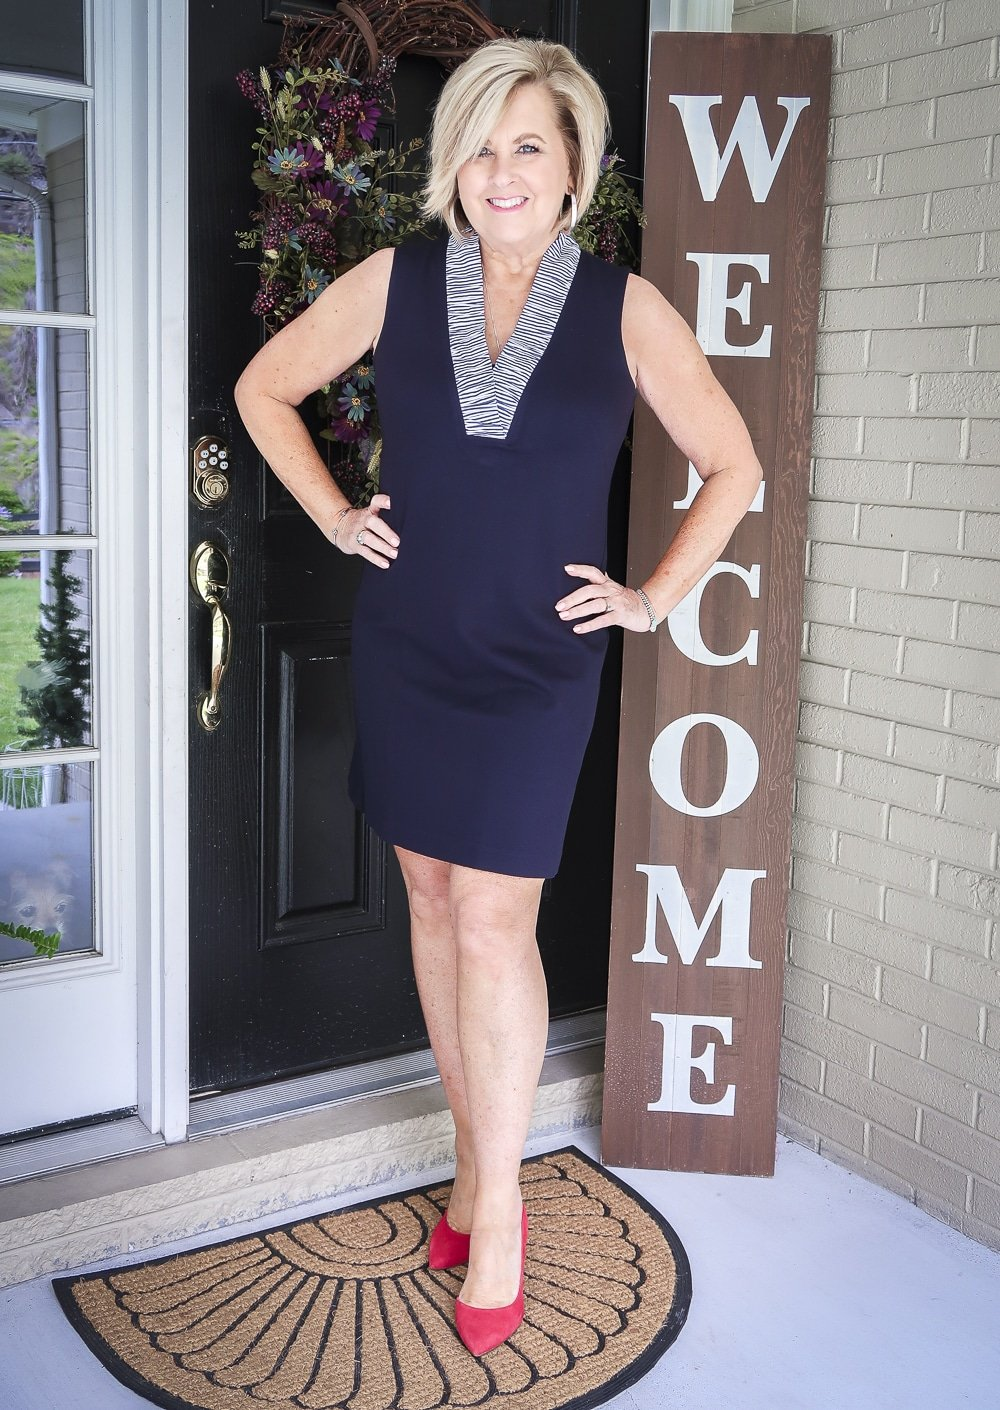 Fashion Blogger 50 Is Not Old is celebrating turning 60 with a navy sheath dress with a striped ruffled neckline from Eliza J and bright red pumps